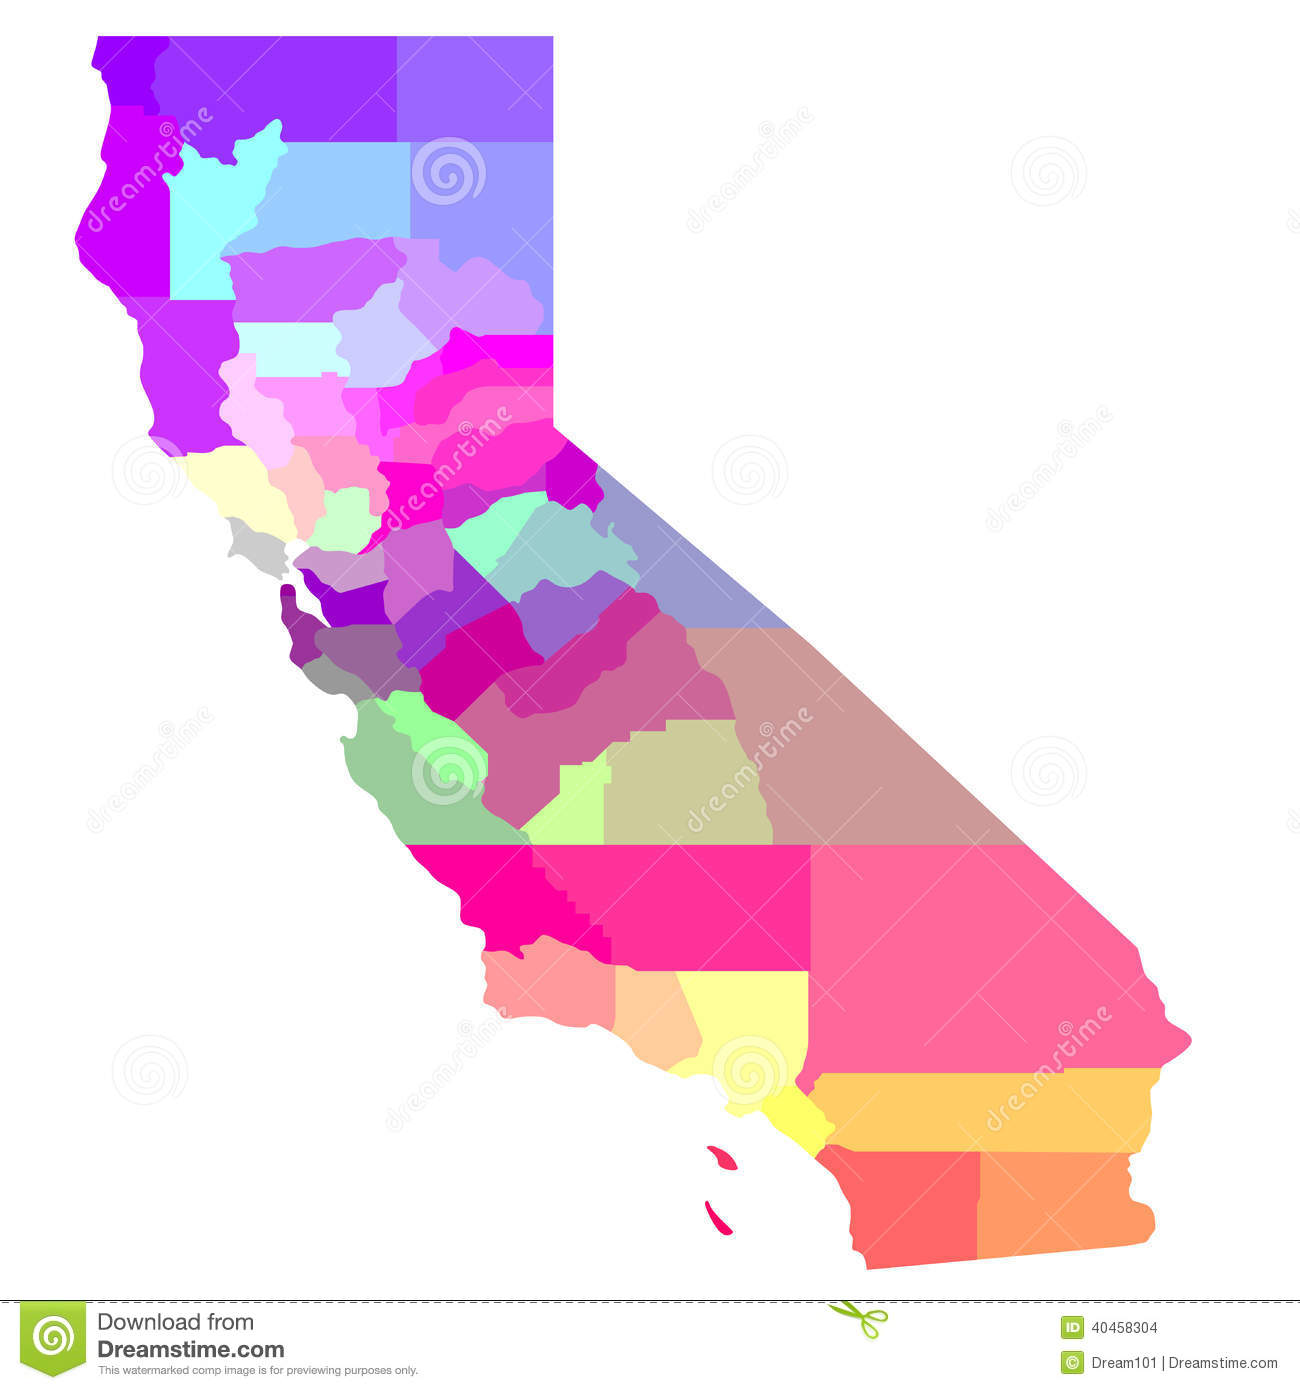 California Map Stock Photo Image - Detailed map of california